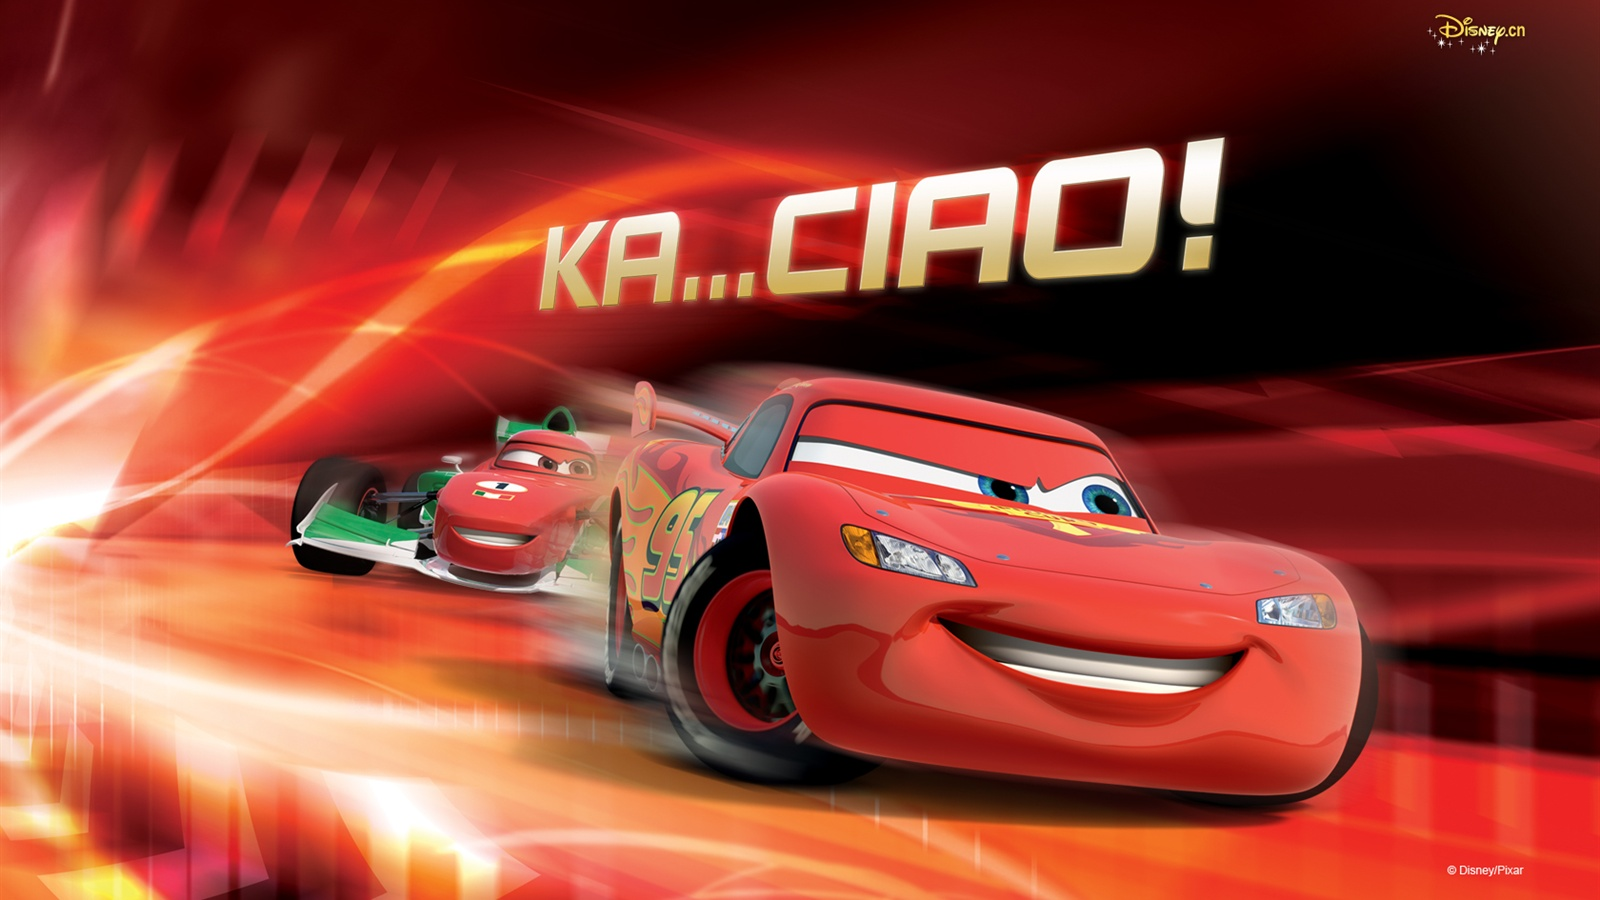 Disney Cars 3 Wallpaper >> Wallpaper Cars driving rapidly 1680x1050 HD Picture, Image